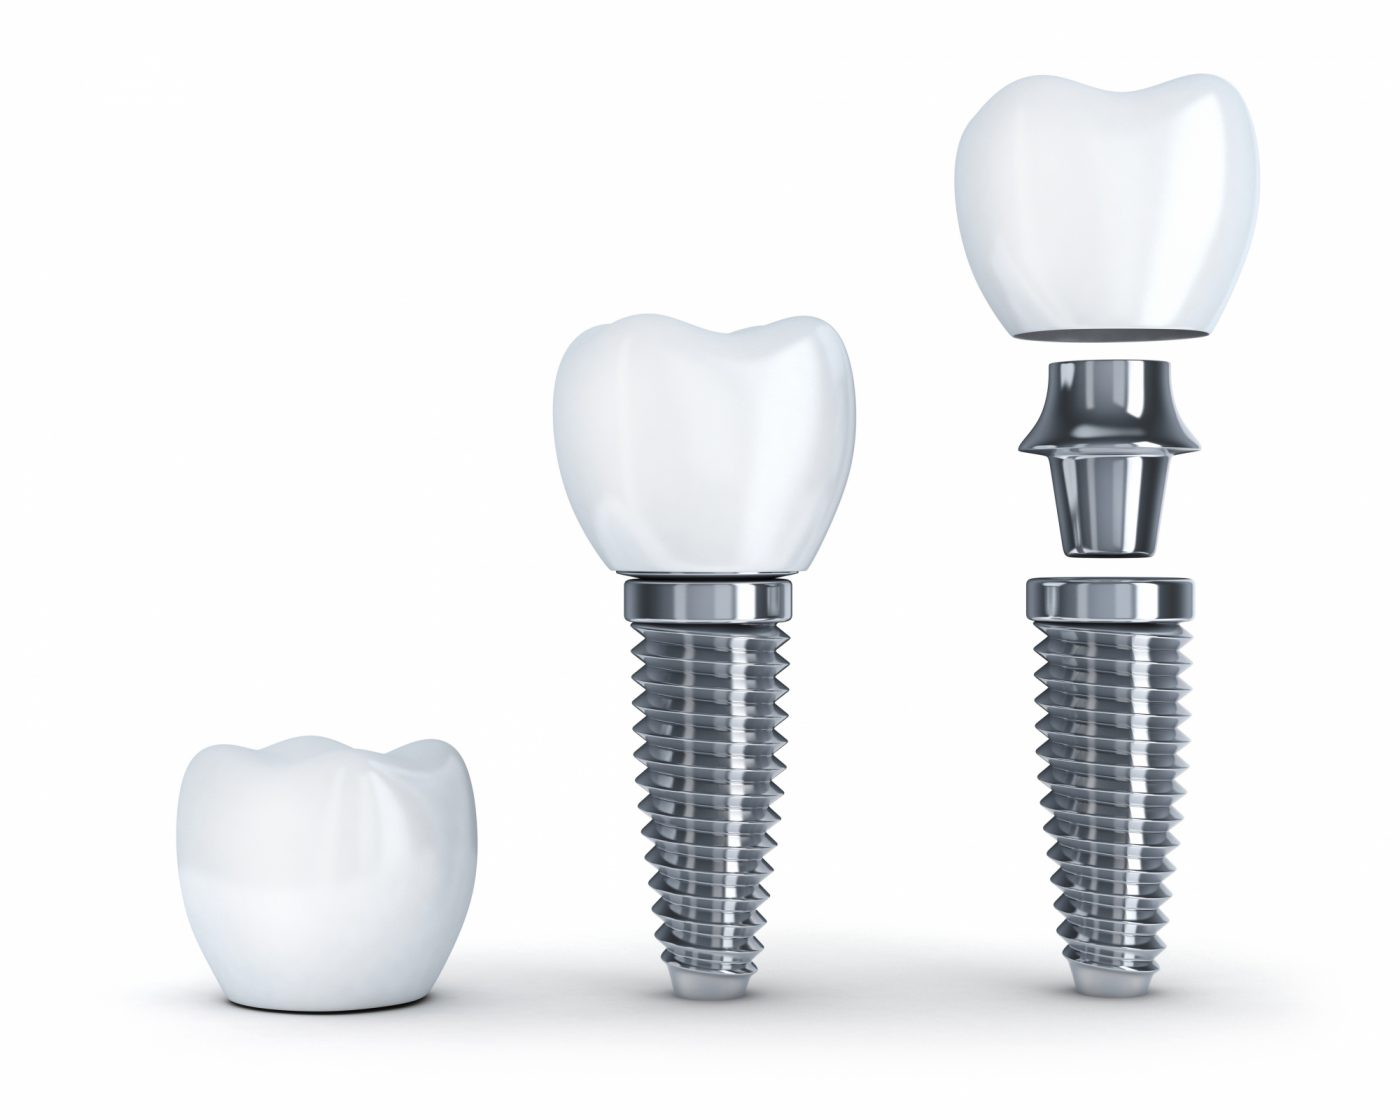 Invisalign Jones Dental Implant Clinic Rugby